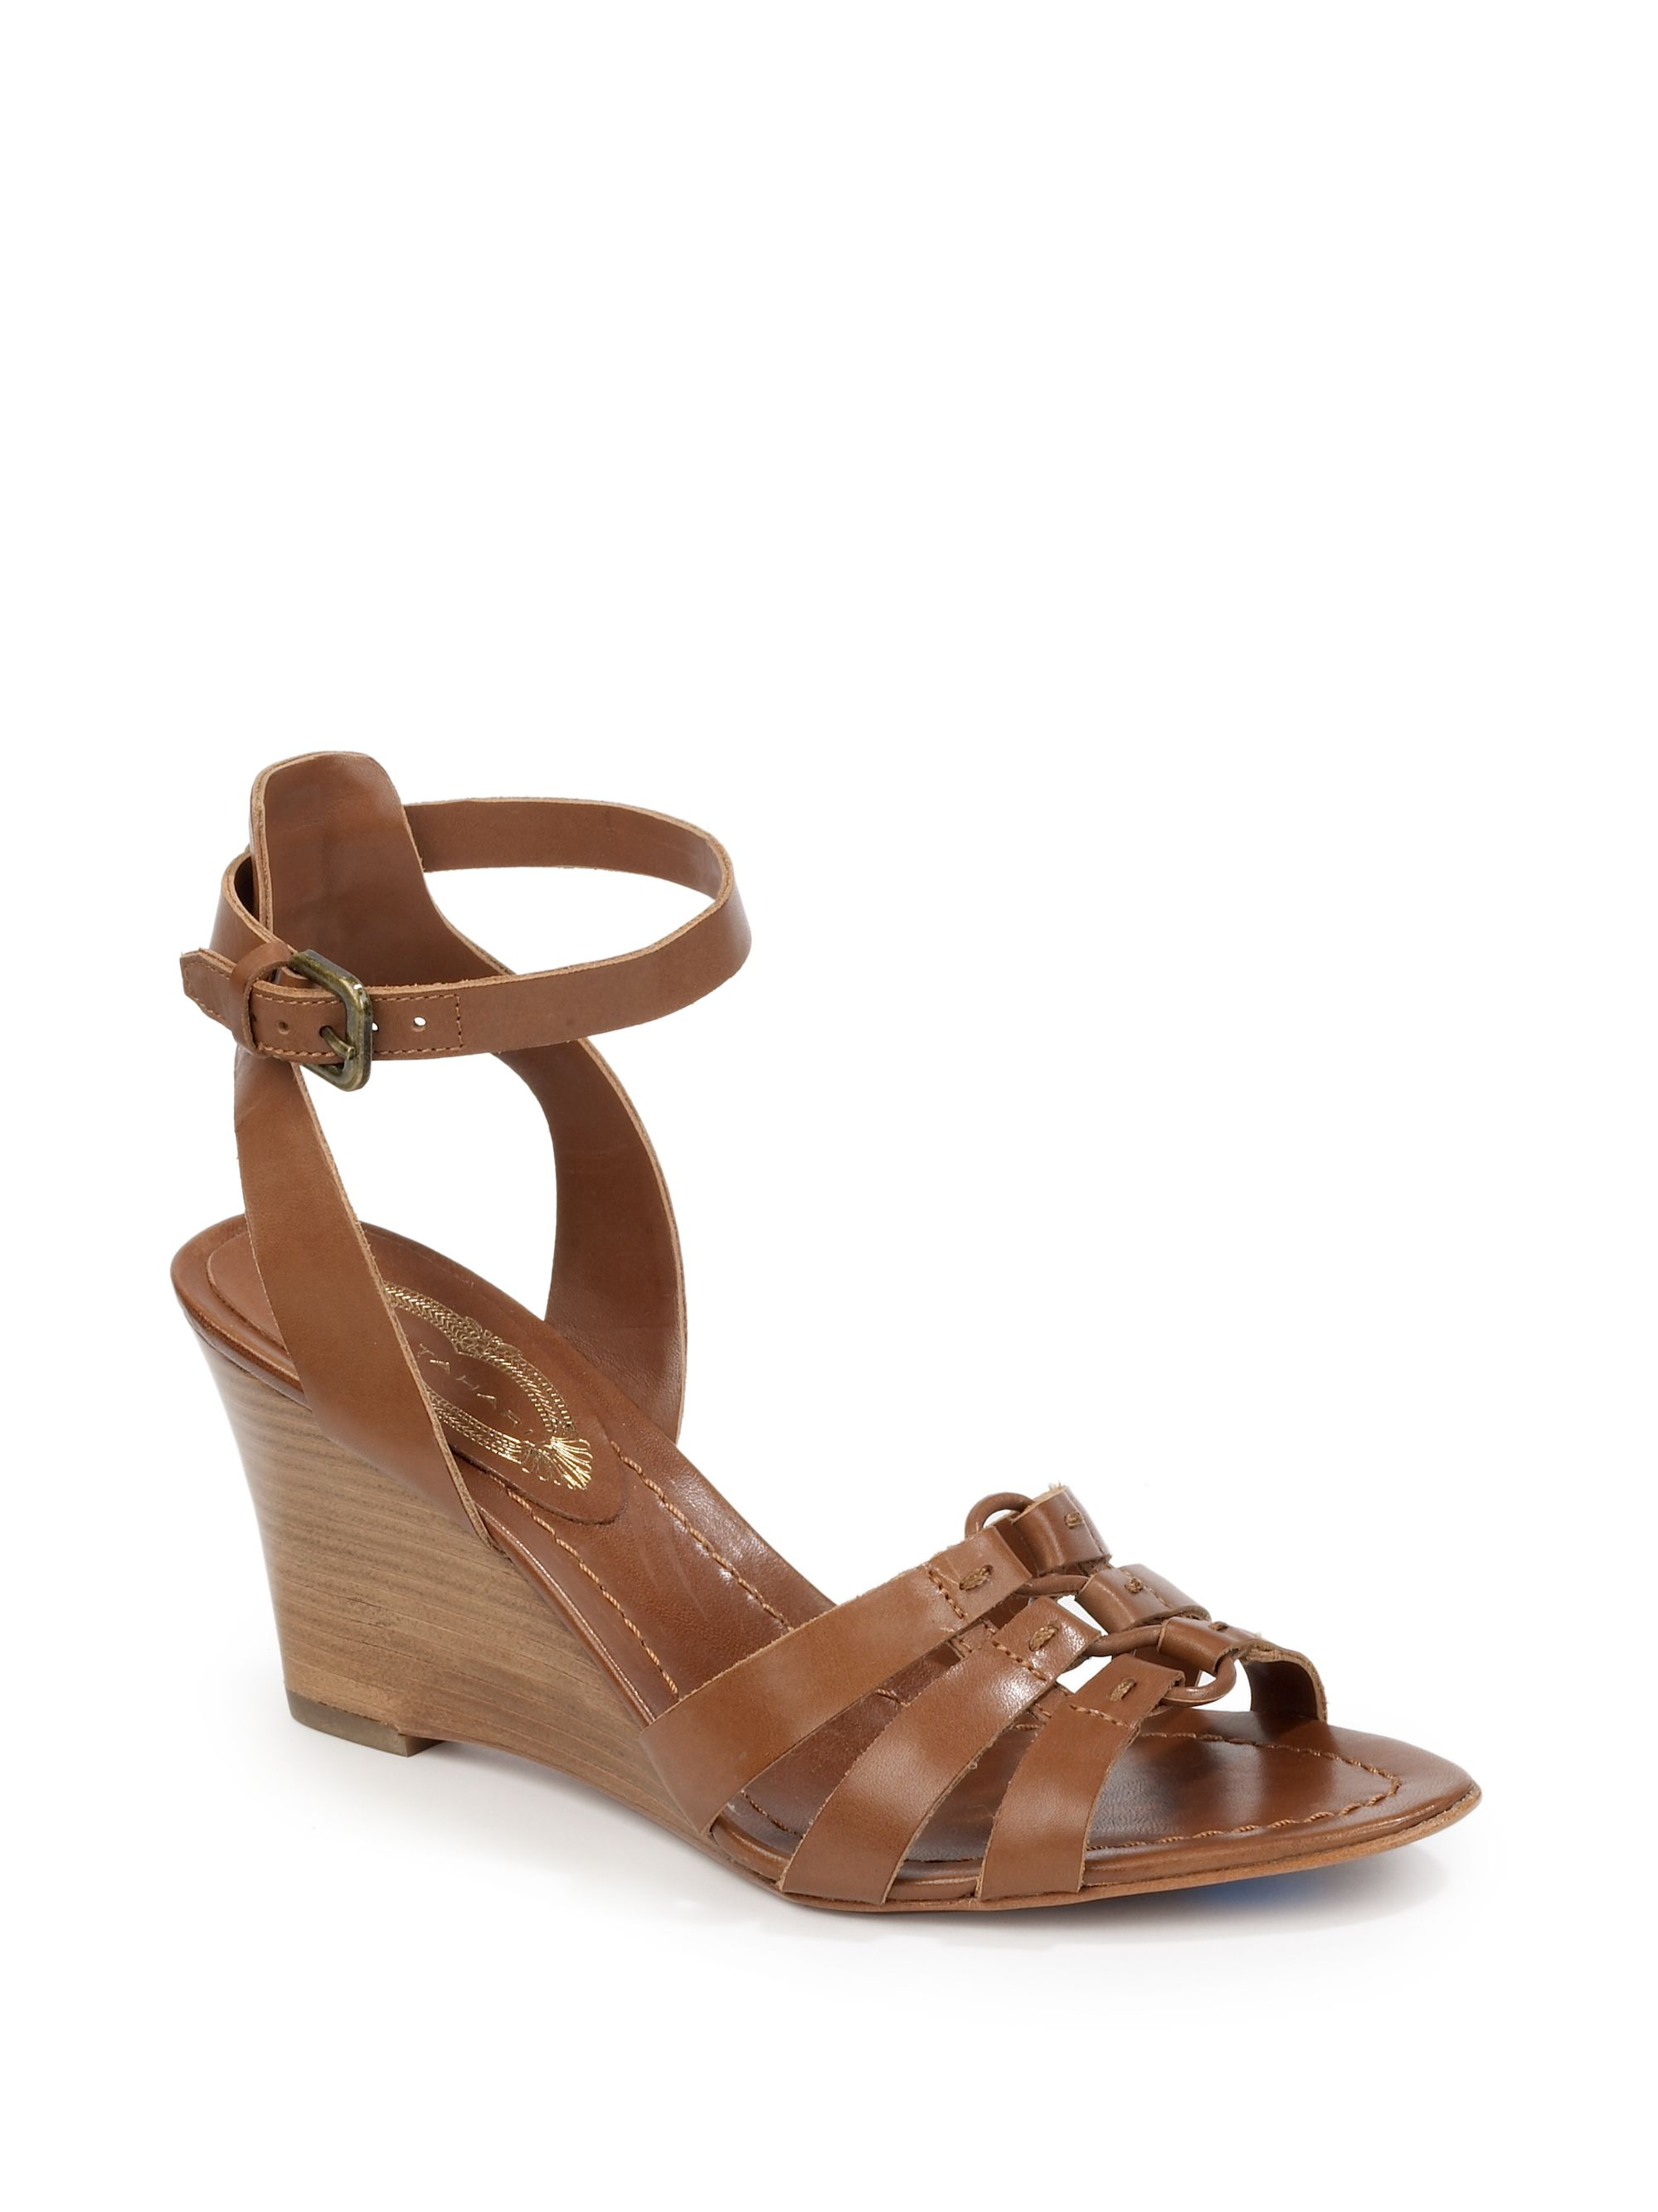 elie tahari wedge sandals in brown nutmeg lyst